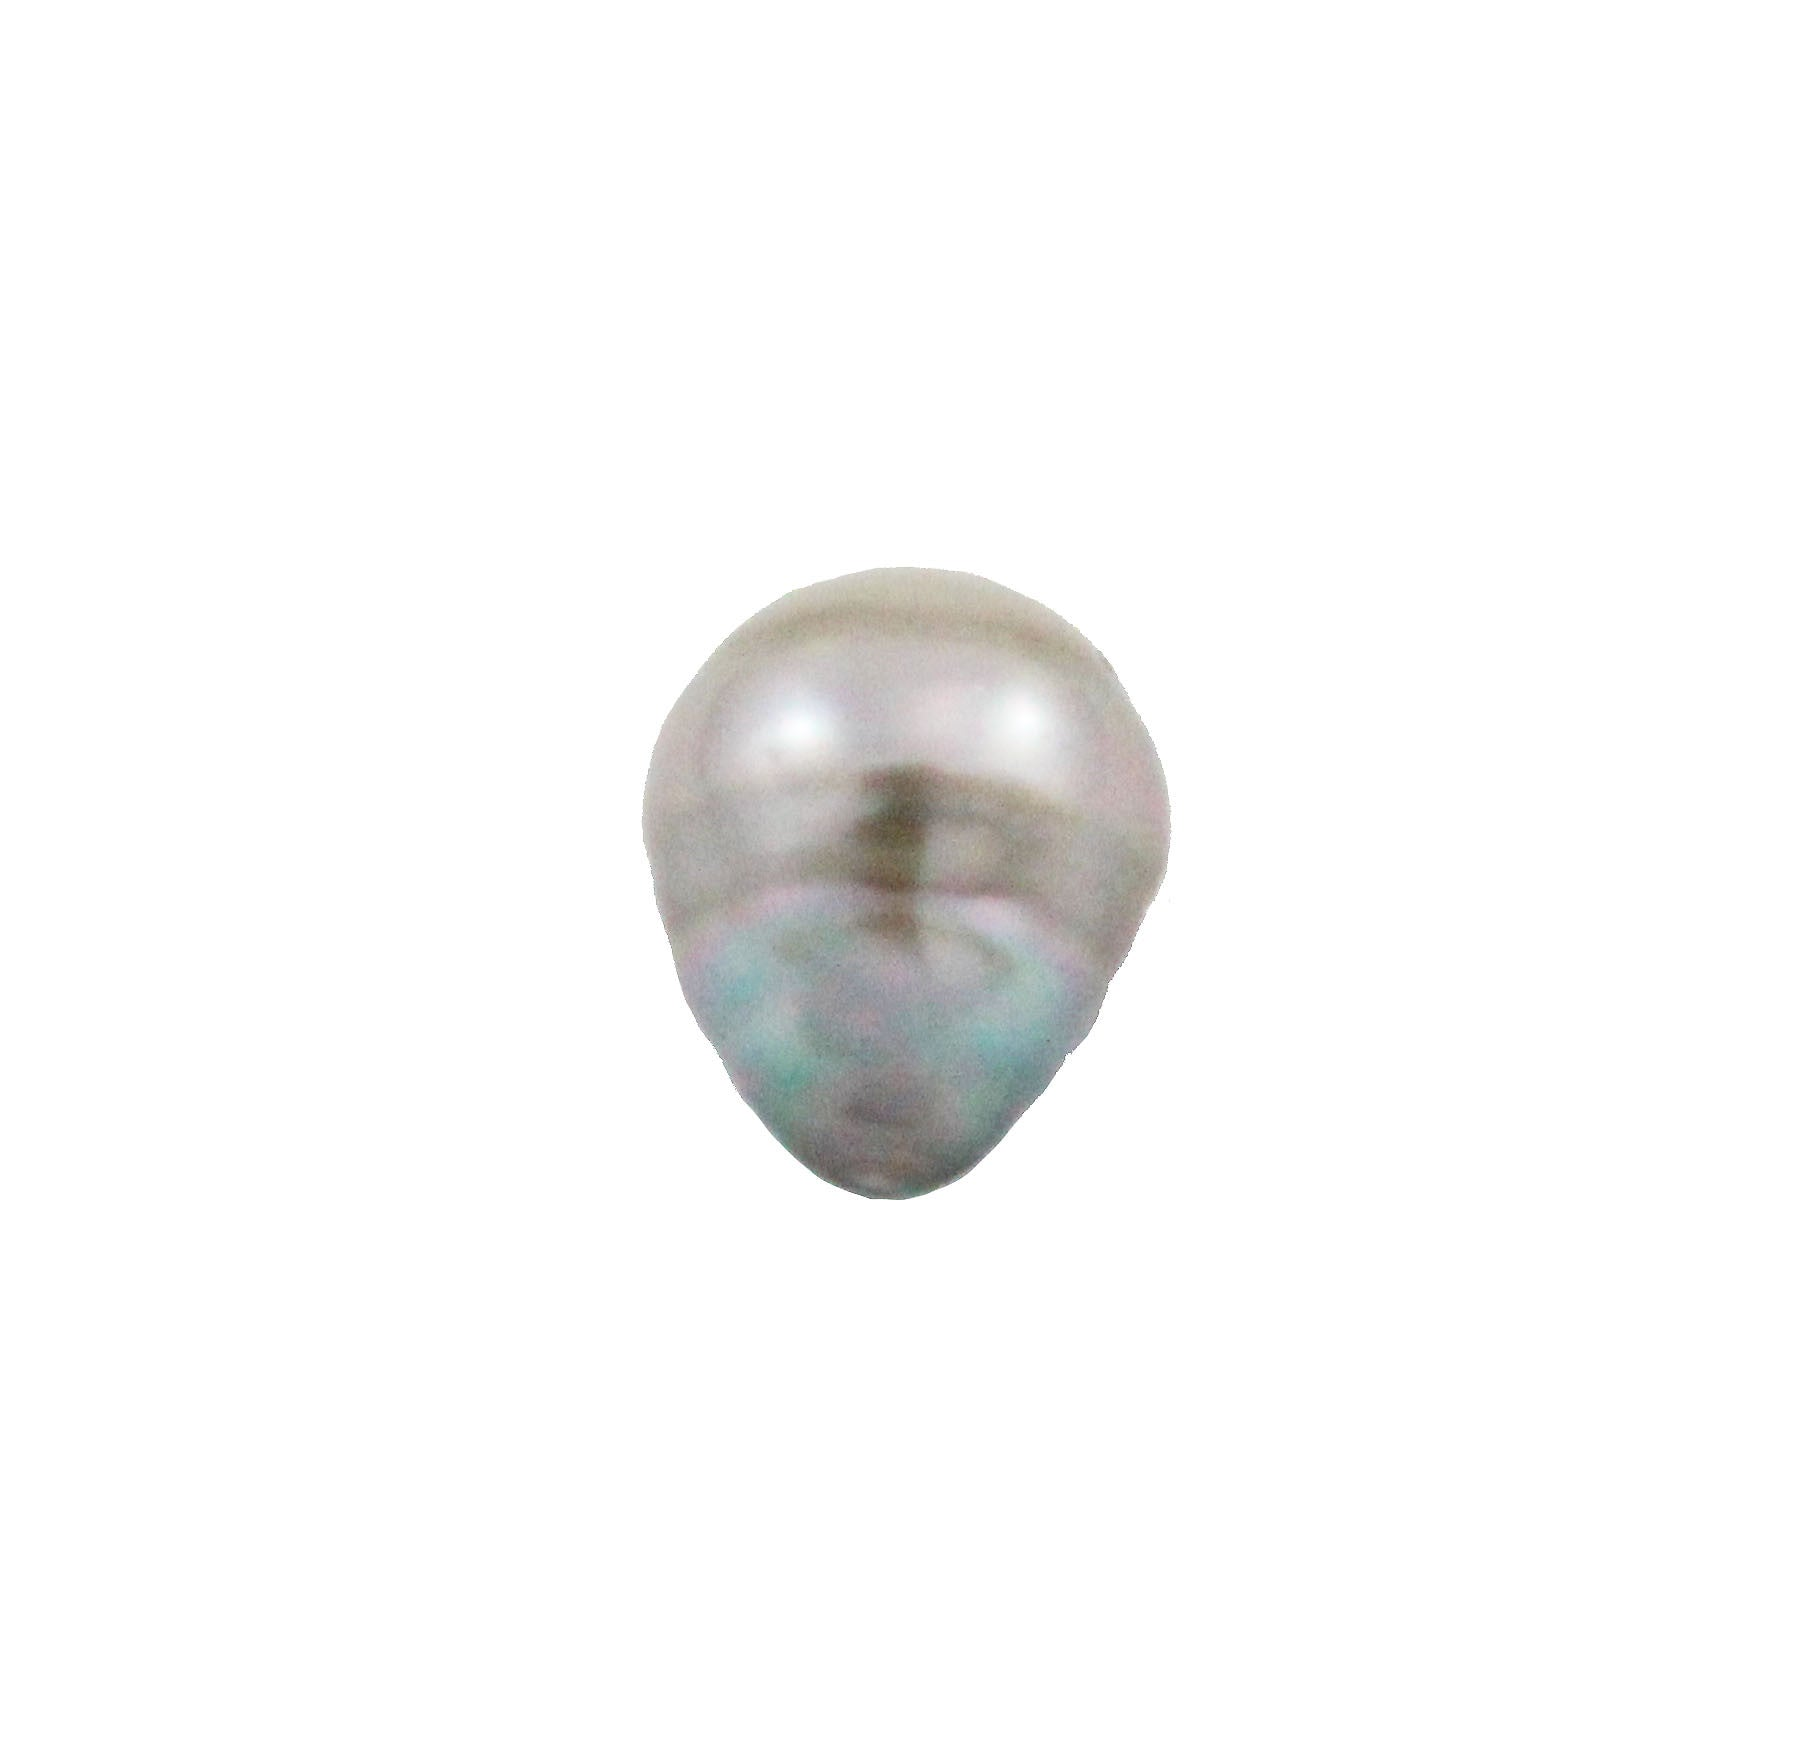 Tahitian pearl undrilled 0.95gr mm 10.26x8.26mm - Purchase only with custom order - Sarah Hughes - 5